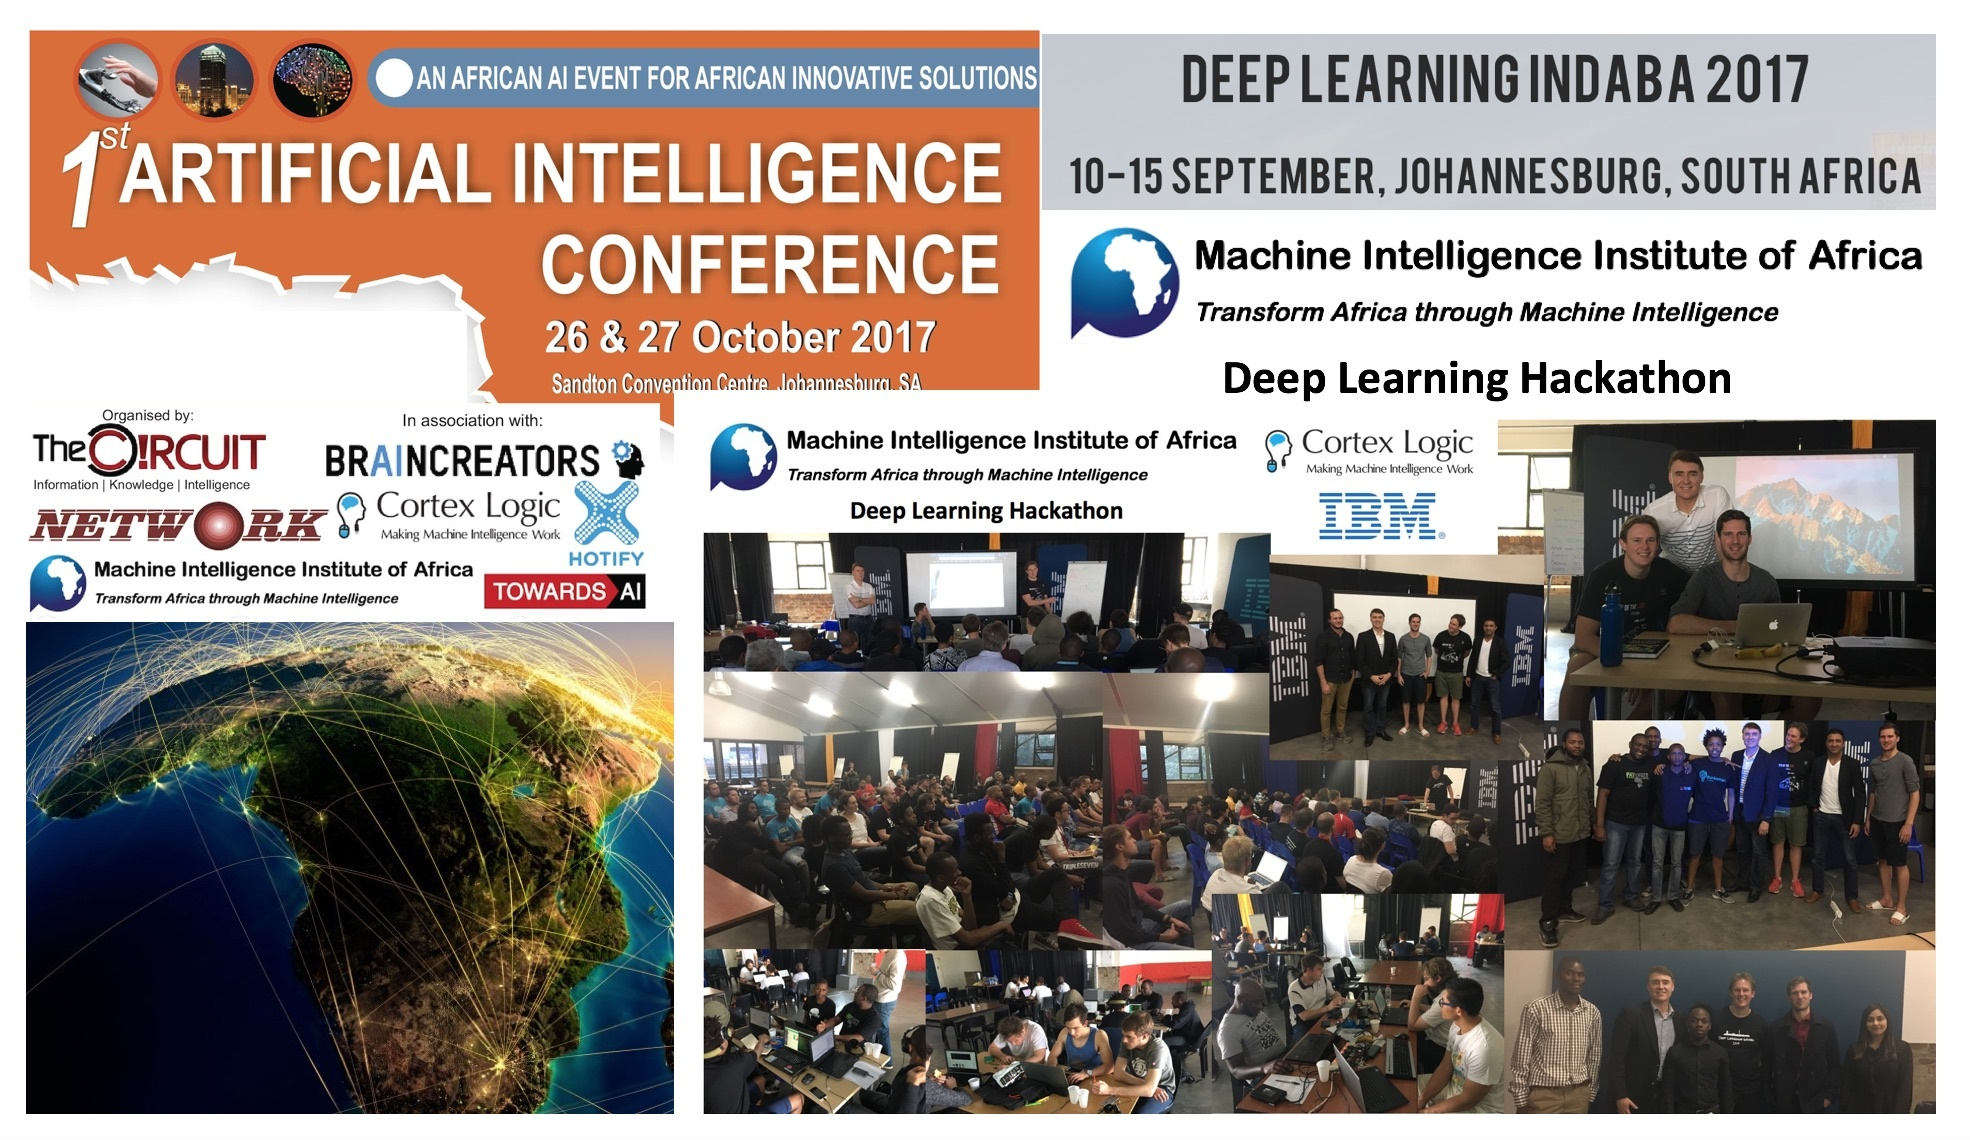 Presentations & Videos at October-November 2017 AI Events